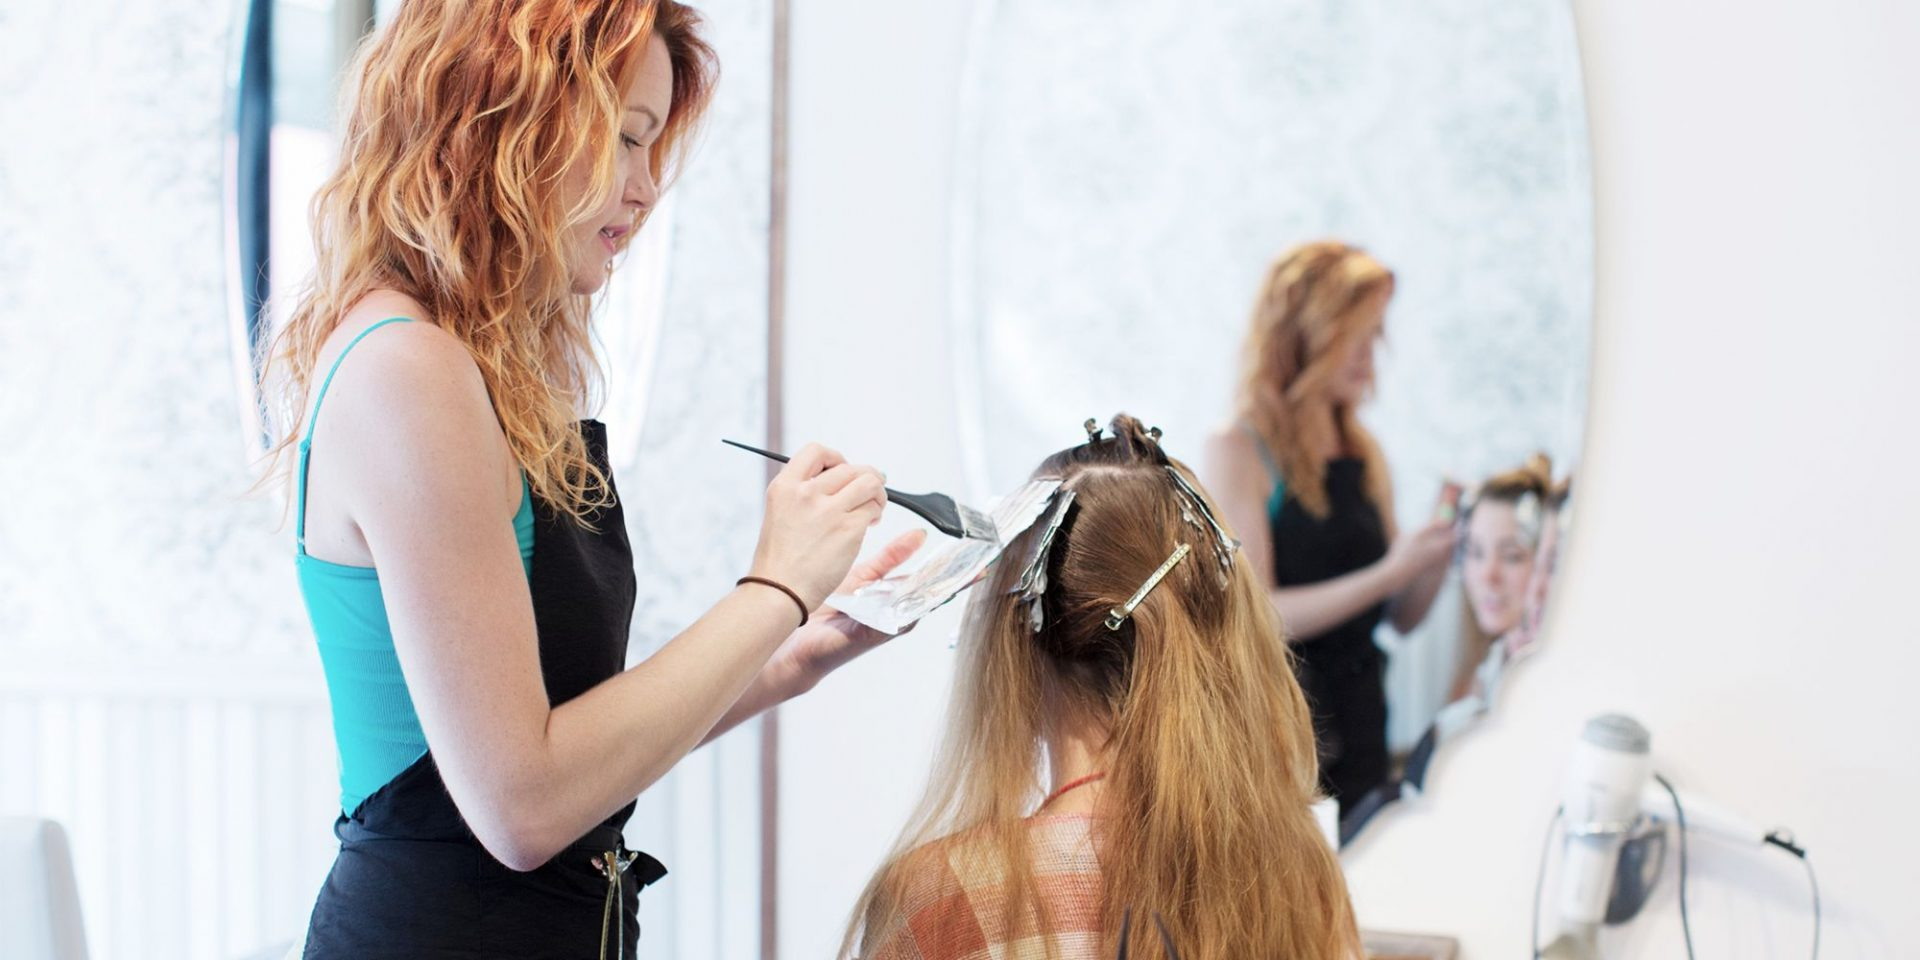 Customer to Hairstylist: Importance of communication, help and giving gifts